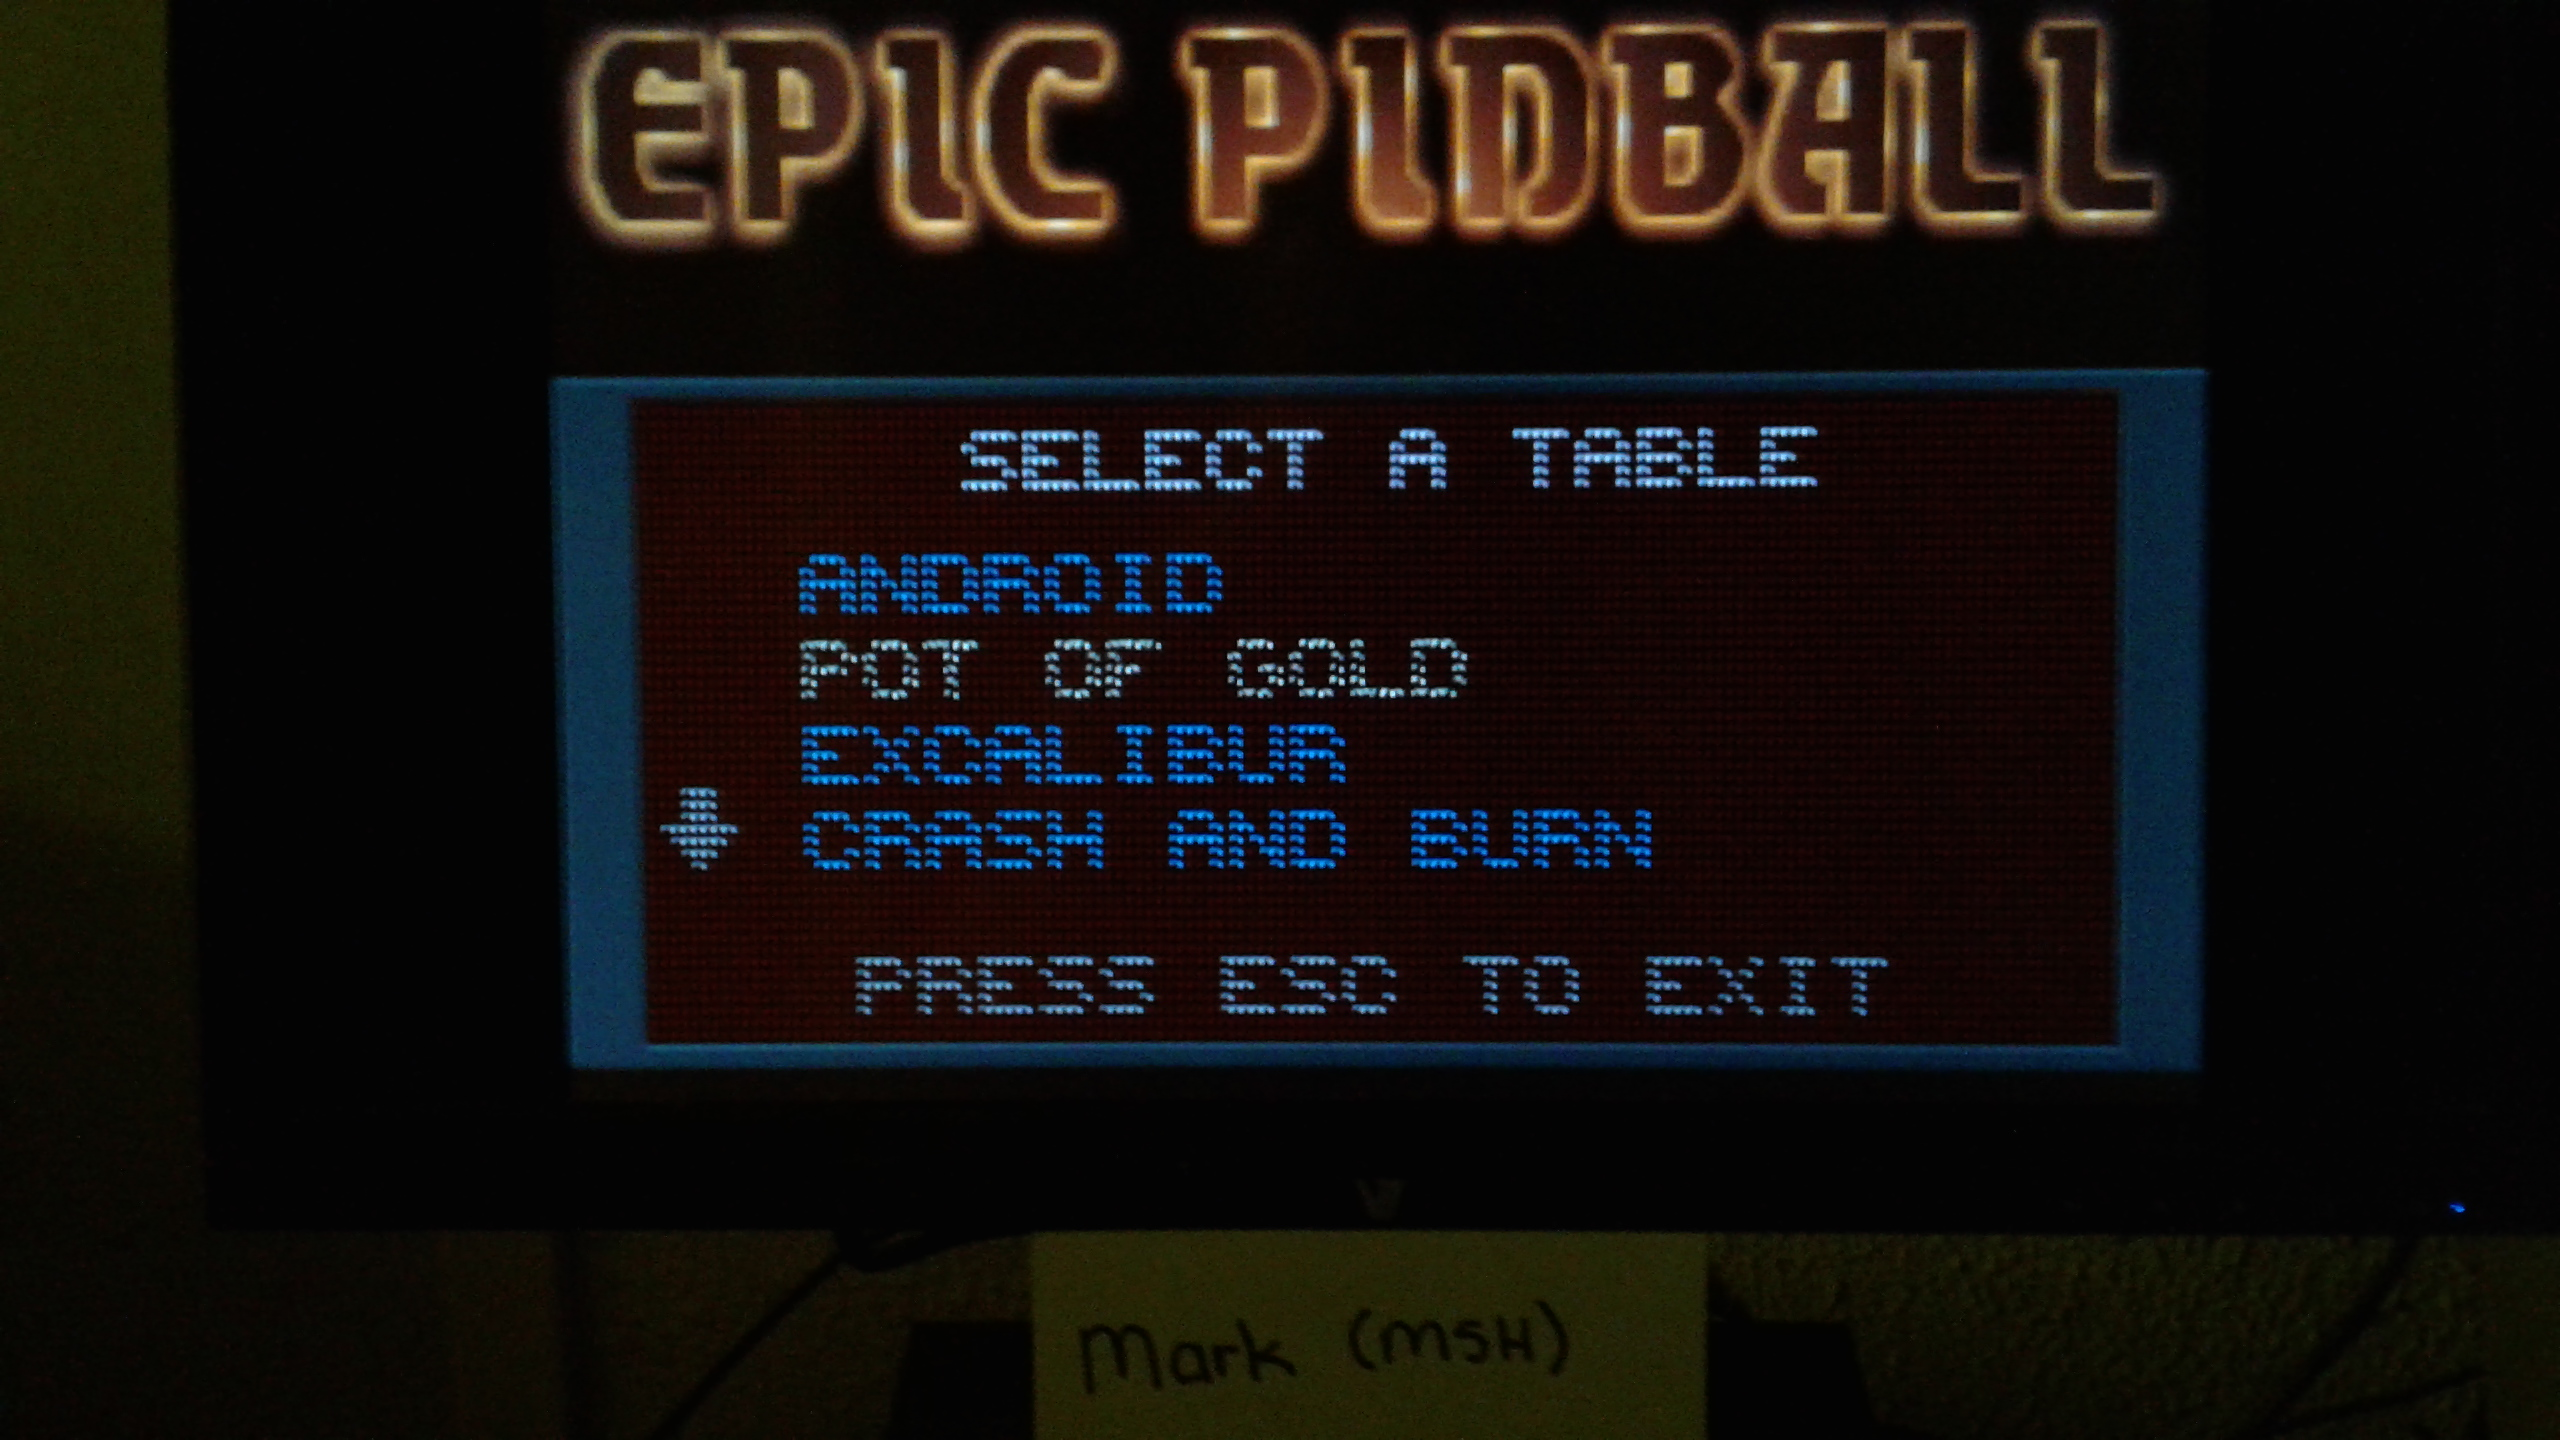 Mark: Epic Pinball: Pot of Gold (PC Emulated / DOSBox) 52,255,000 points on 2019-05-11 23:55:28